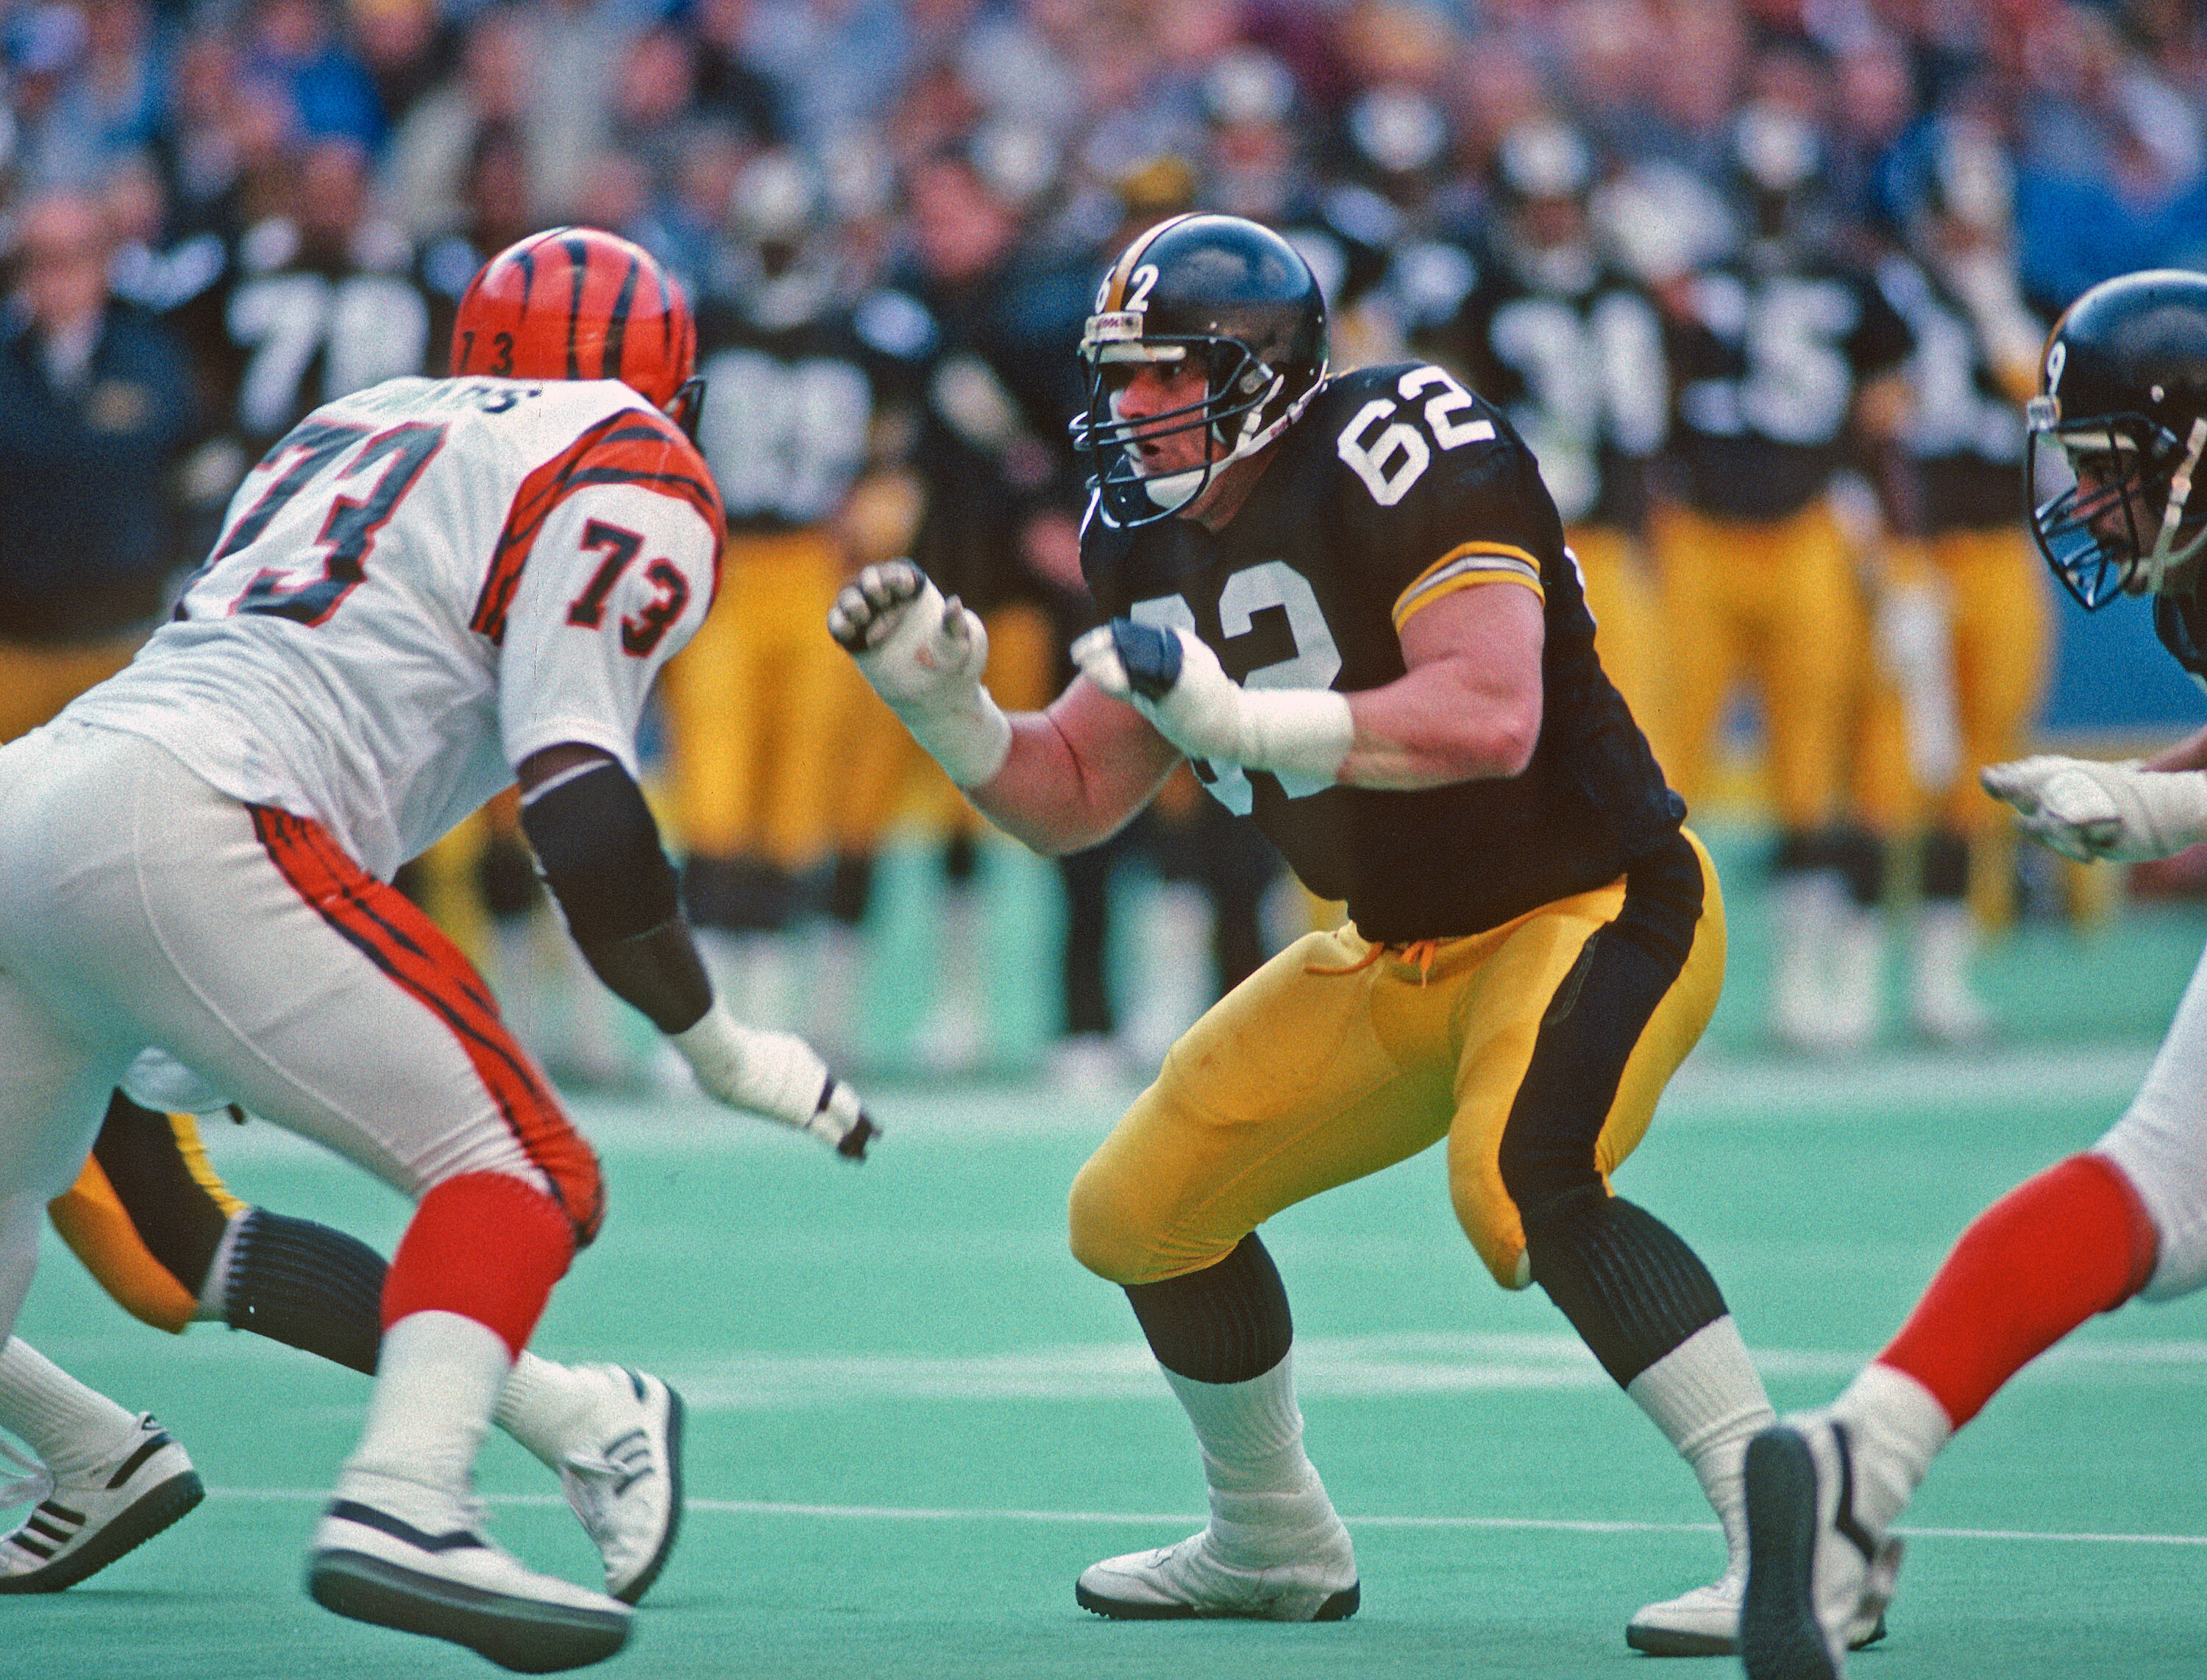 Former NFL player Tunch Ilkin dies at 63